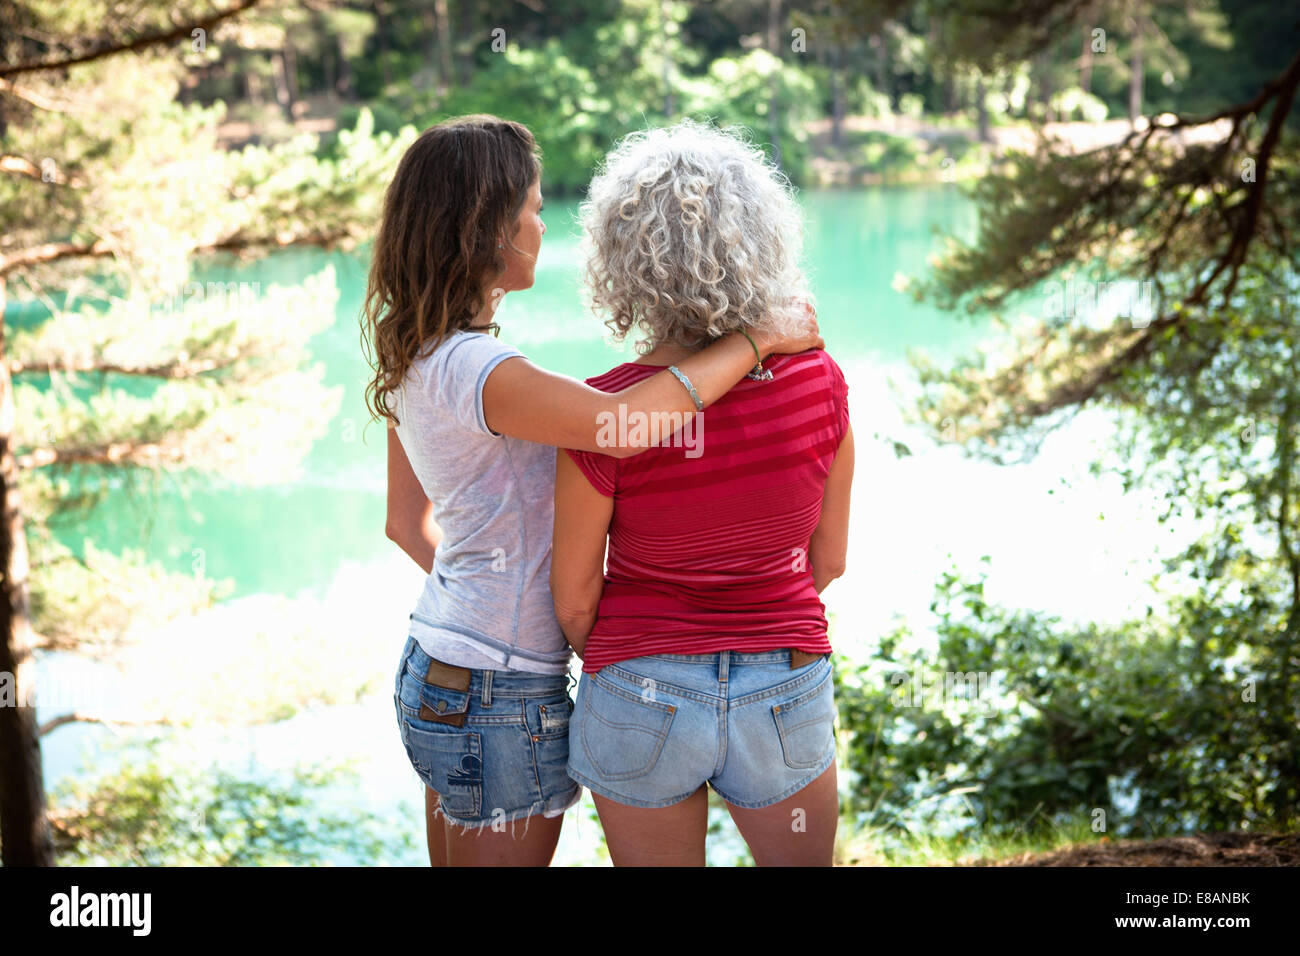 Mother and daughter enjoying nature, The Blue Pool, Wareham, Dorset, United Kingdom - Stock Image